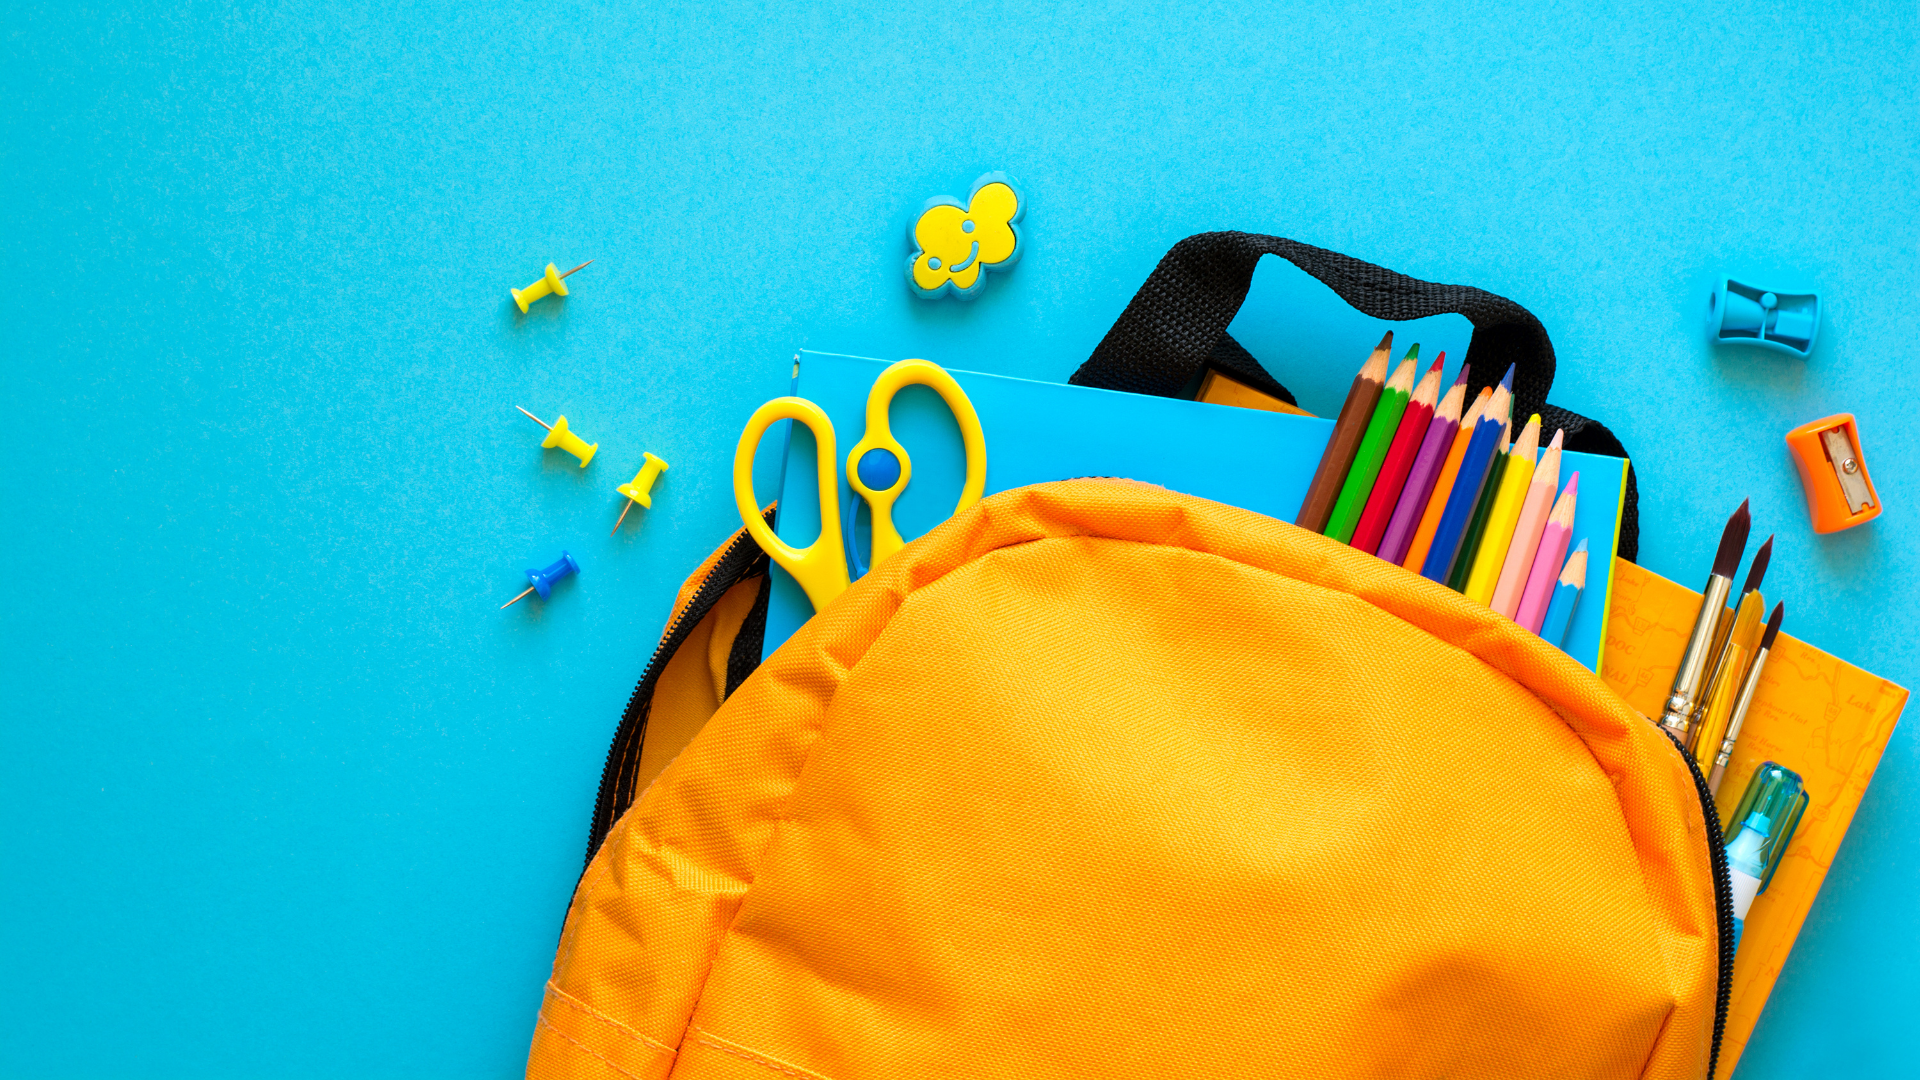 Image shows an open backpack with school supplies spilling out.